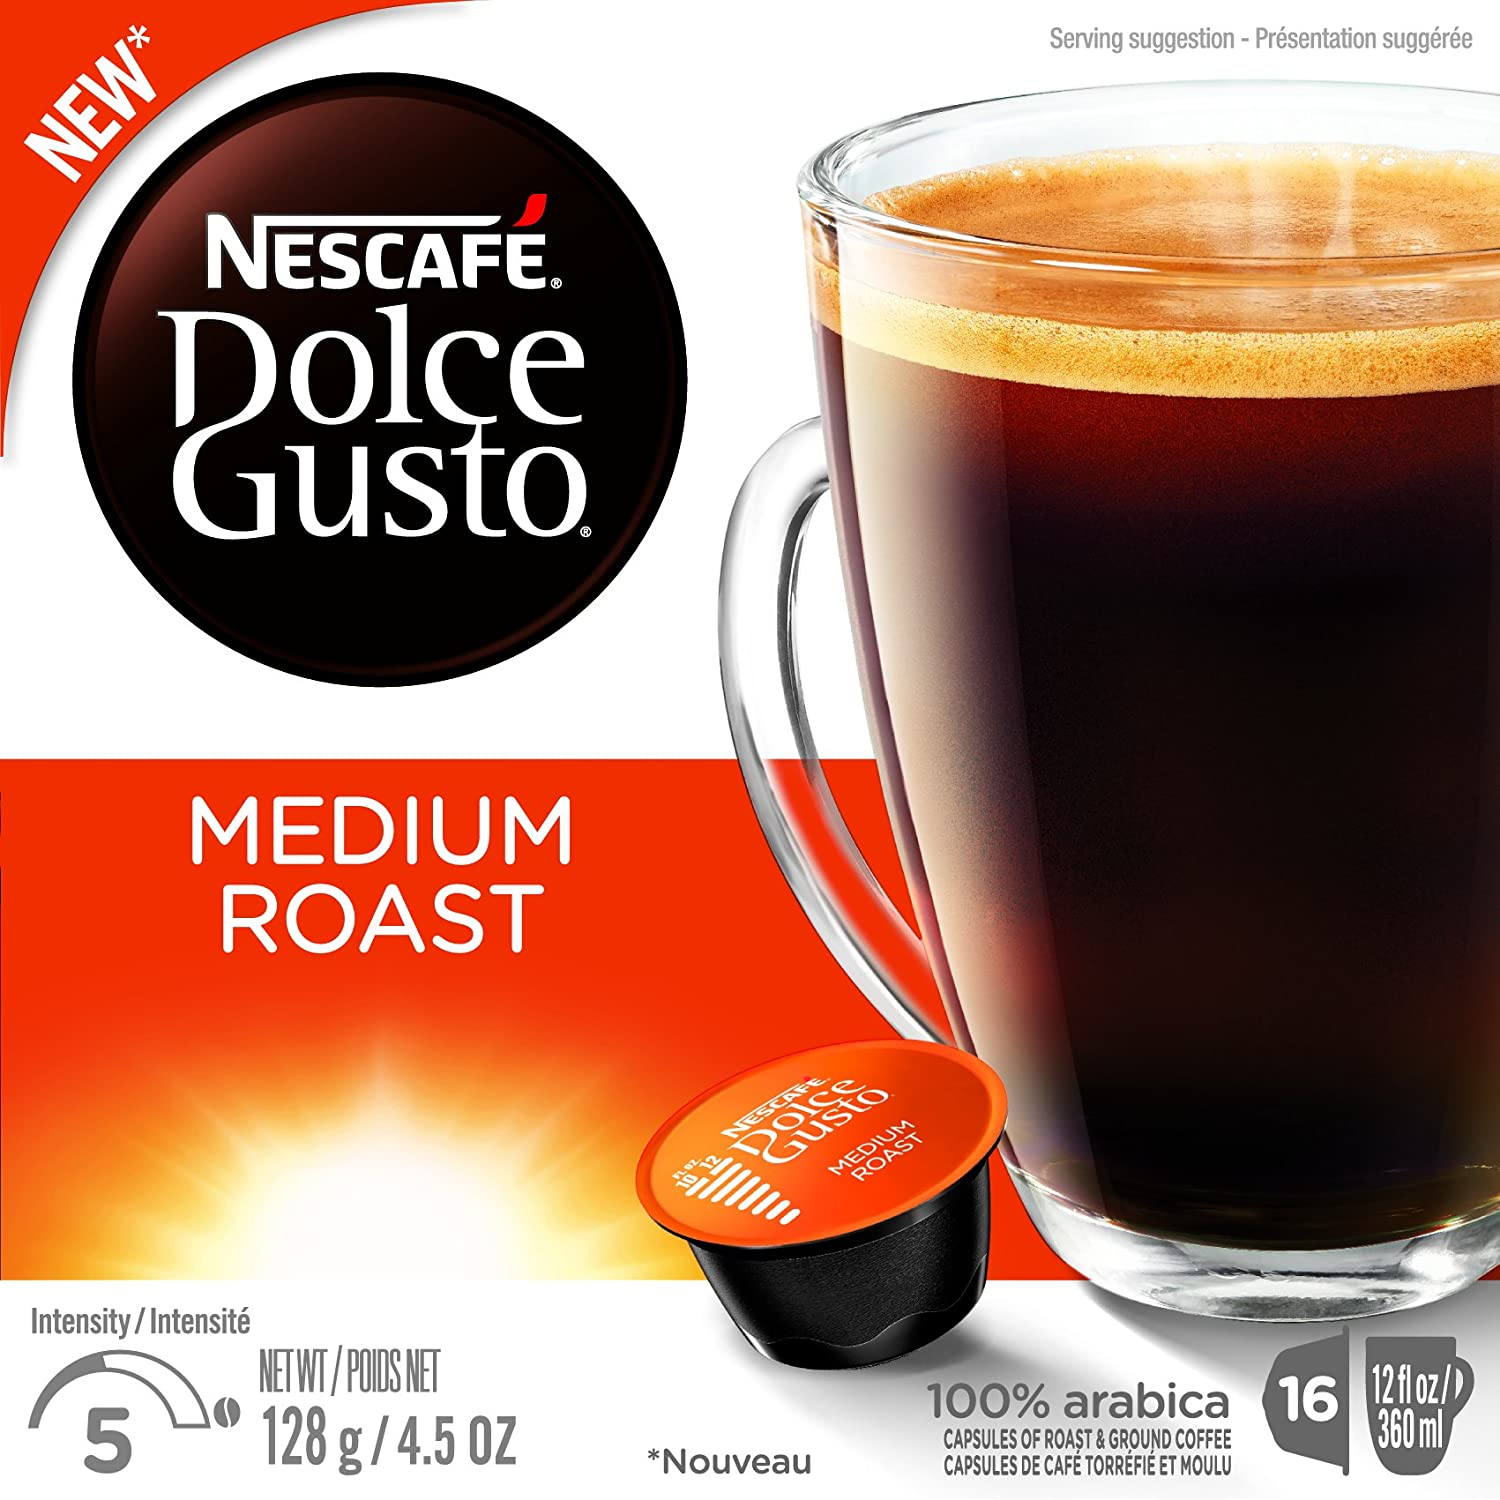 Amazon.com : Nescafe Dolce Gusto for Nescafe Dolce Gusto Brewers, Caramel Latte Macchiato, 16 Count : Coffee Brewing Machine Capsules : Grocery & Gourmet ...